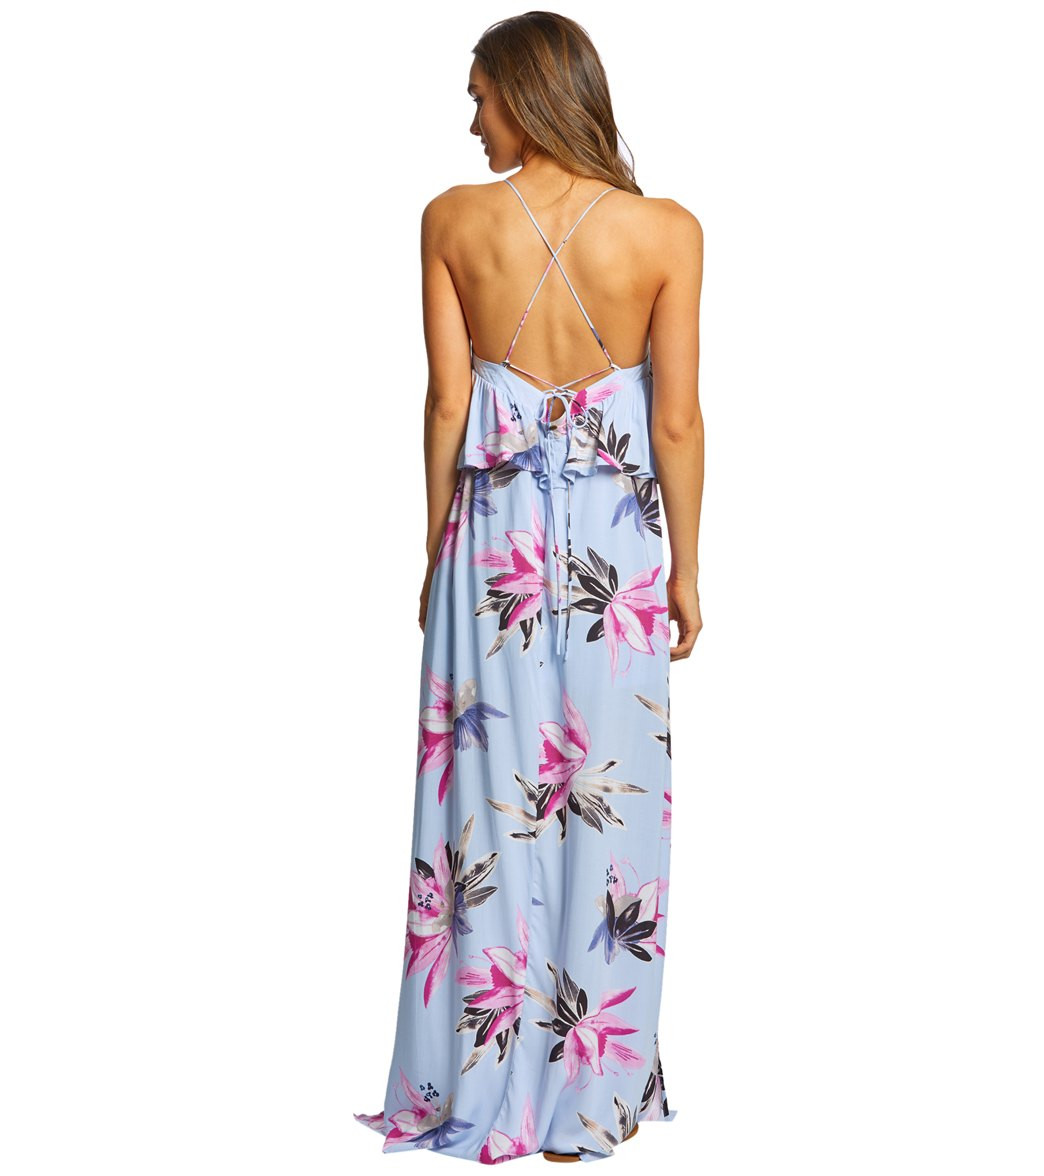 O\'Neill Women\'s Milly Maxi Dress at SwimOutlet.com - Free Shipping